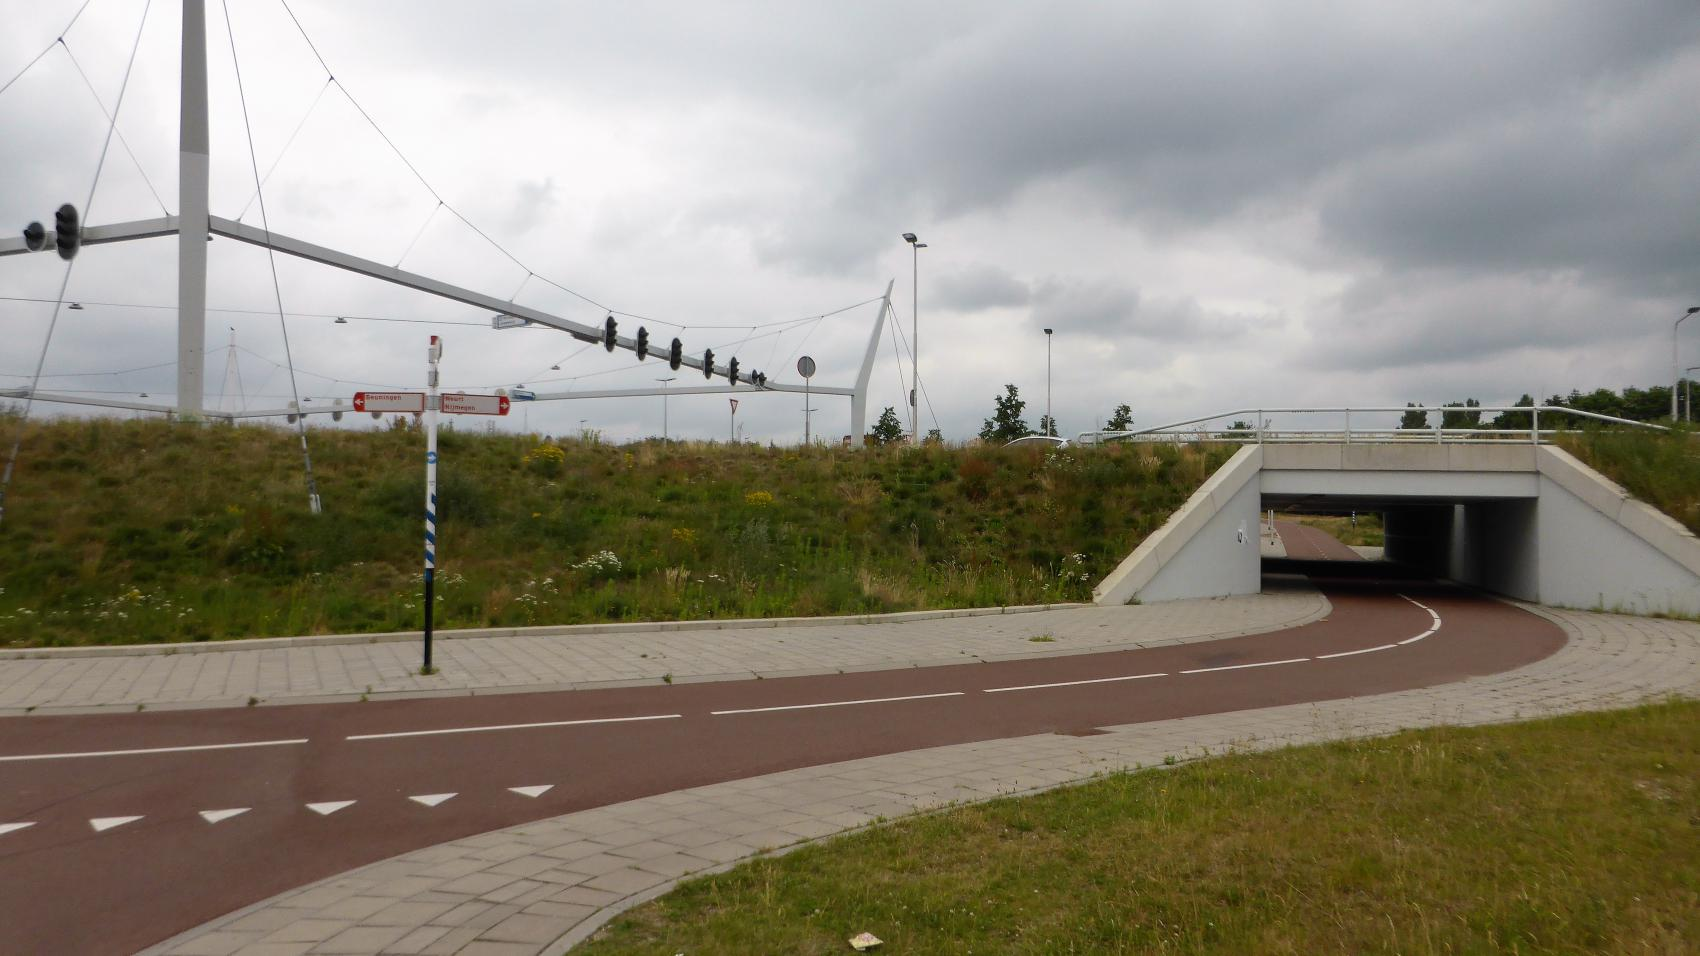 The crossing of Neerbosscheweg (continuation of A73 motorway), Hogelandseweg and IJpenbroekweg between Nijmegen and Beuningen. Traffic lights are for cars, bicycles do not need to stop.